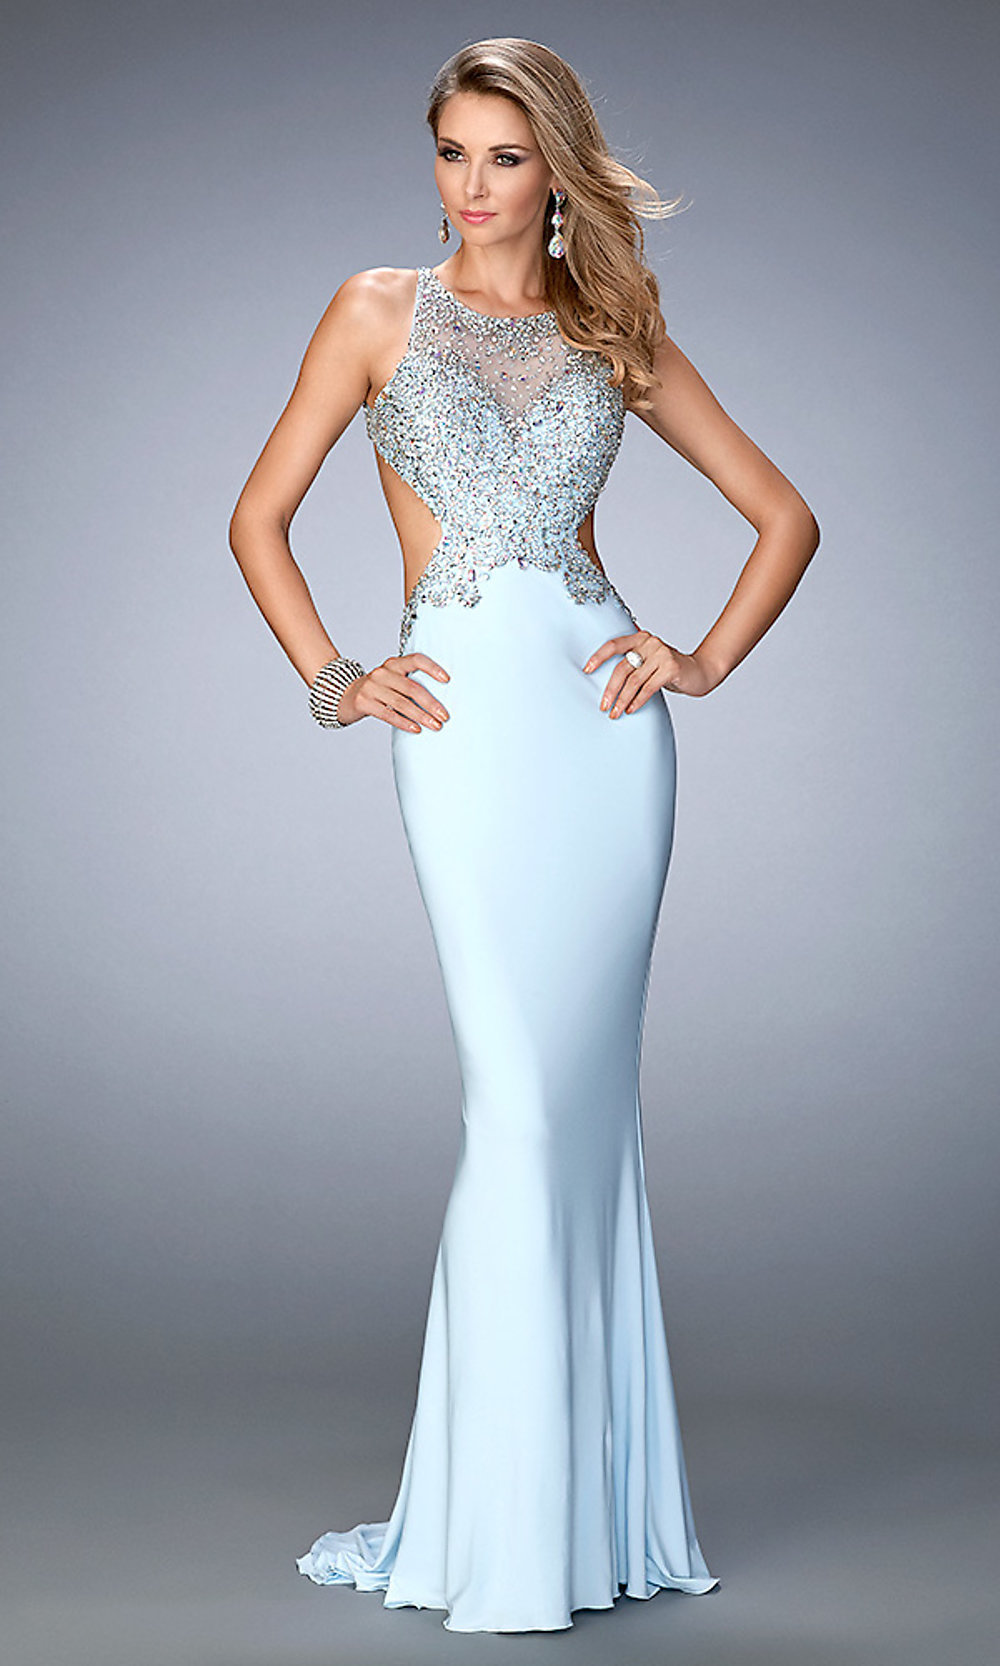 76c64f06775 Image of open-back embellished floor-length Gigi prom dress Style  LF-. Tap  to expand